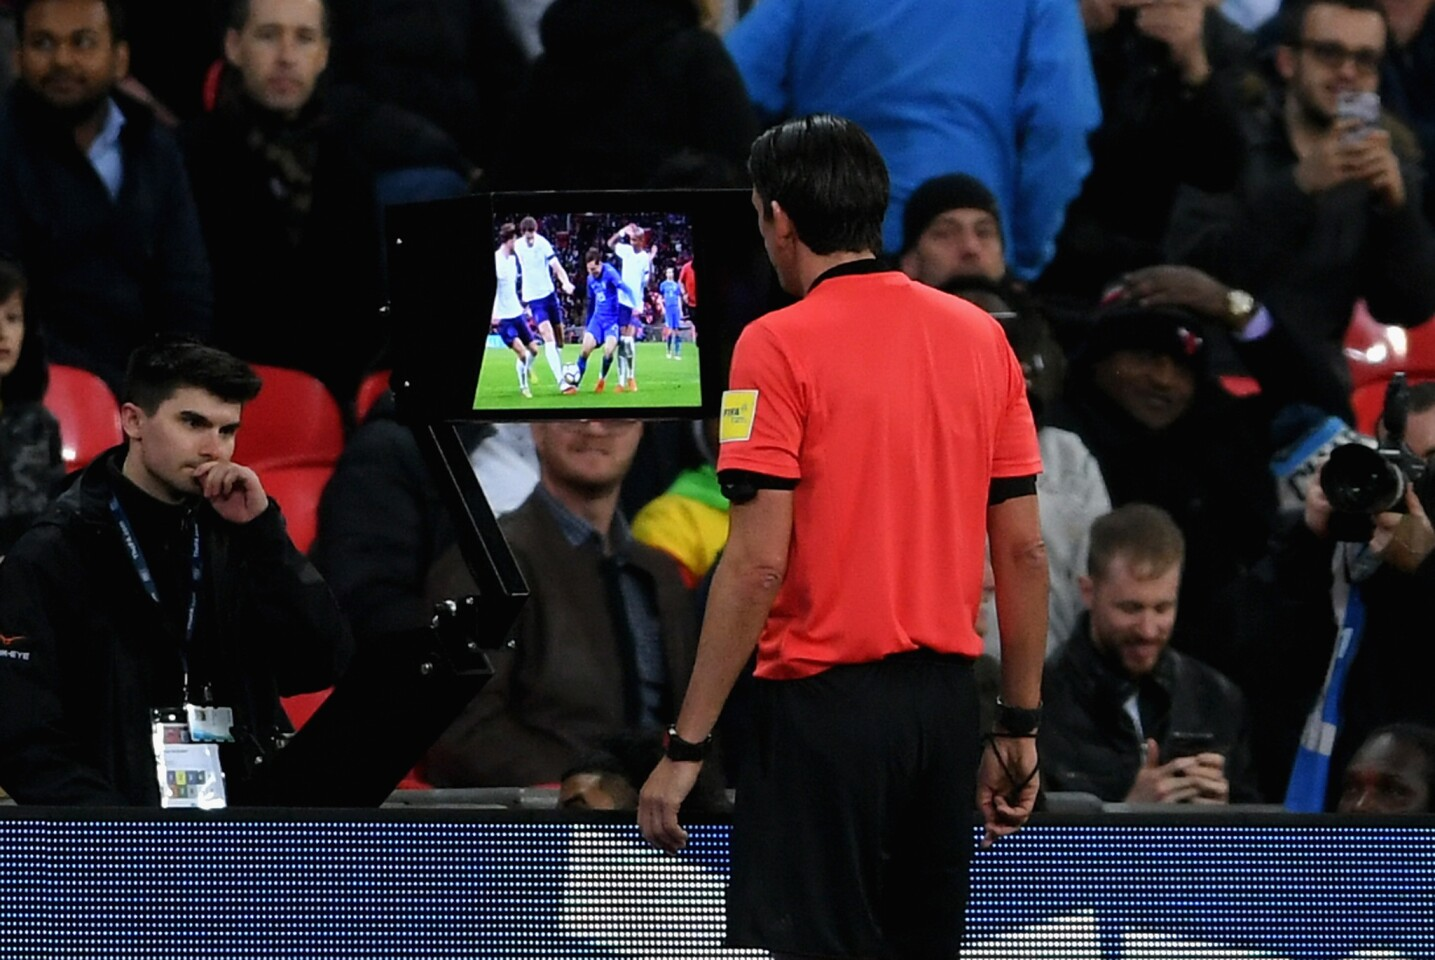 LONDON, ENGLAND - MARCH 27: Referee Deniz Aytekin checks the VAR during the International friendly between England and Italy at Wembley Stadium on March 27, 2018 in London, England.